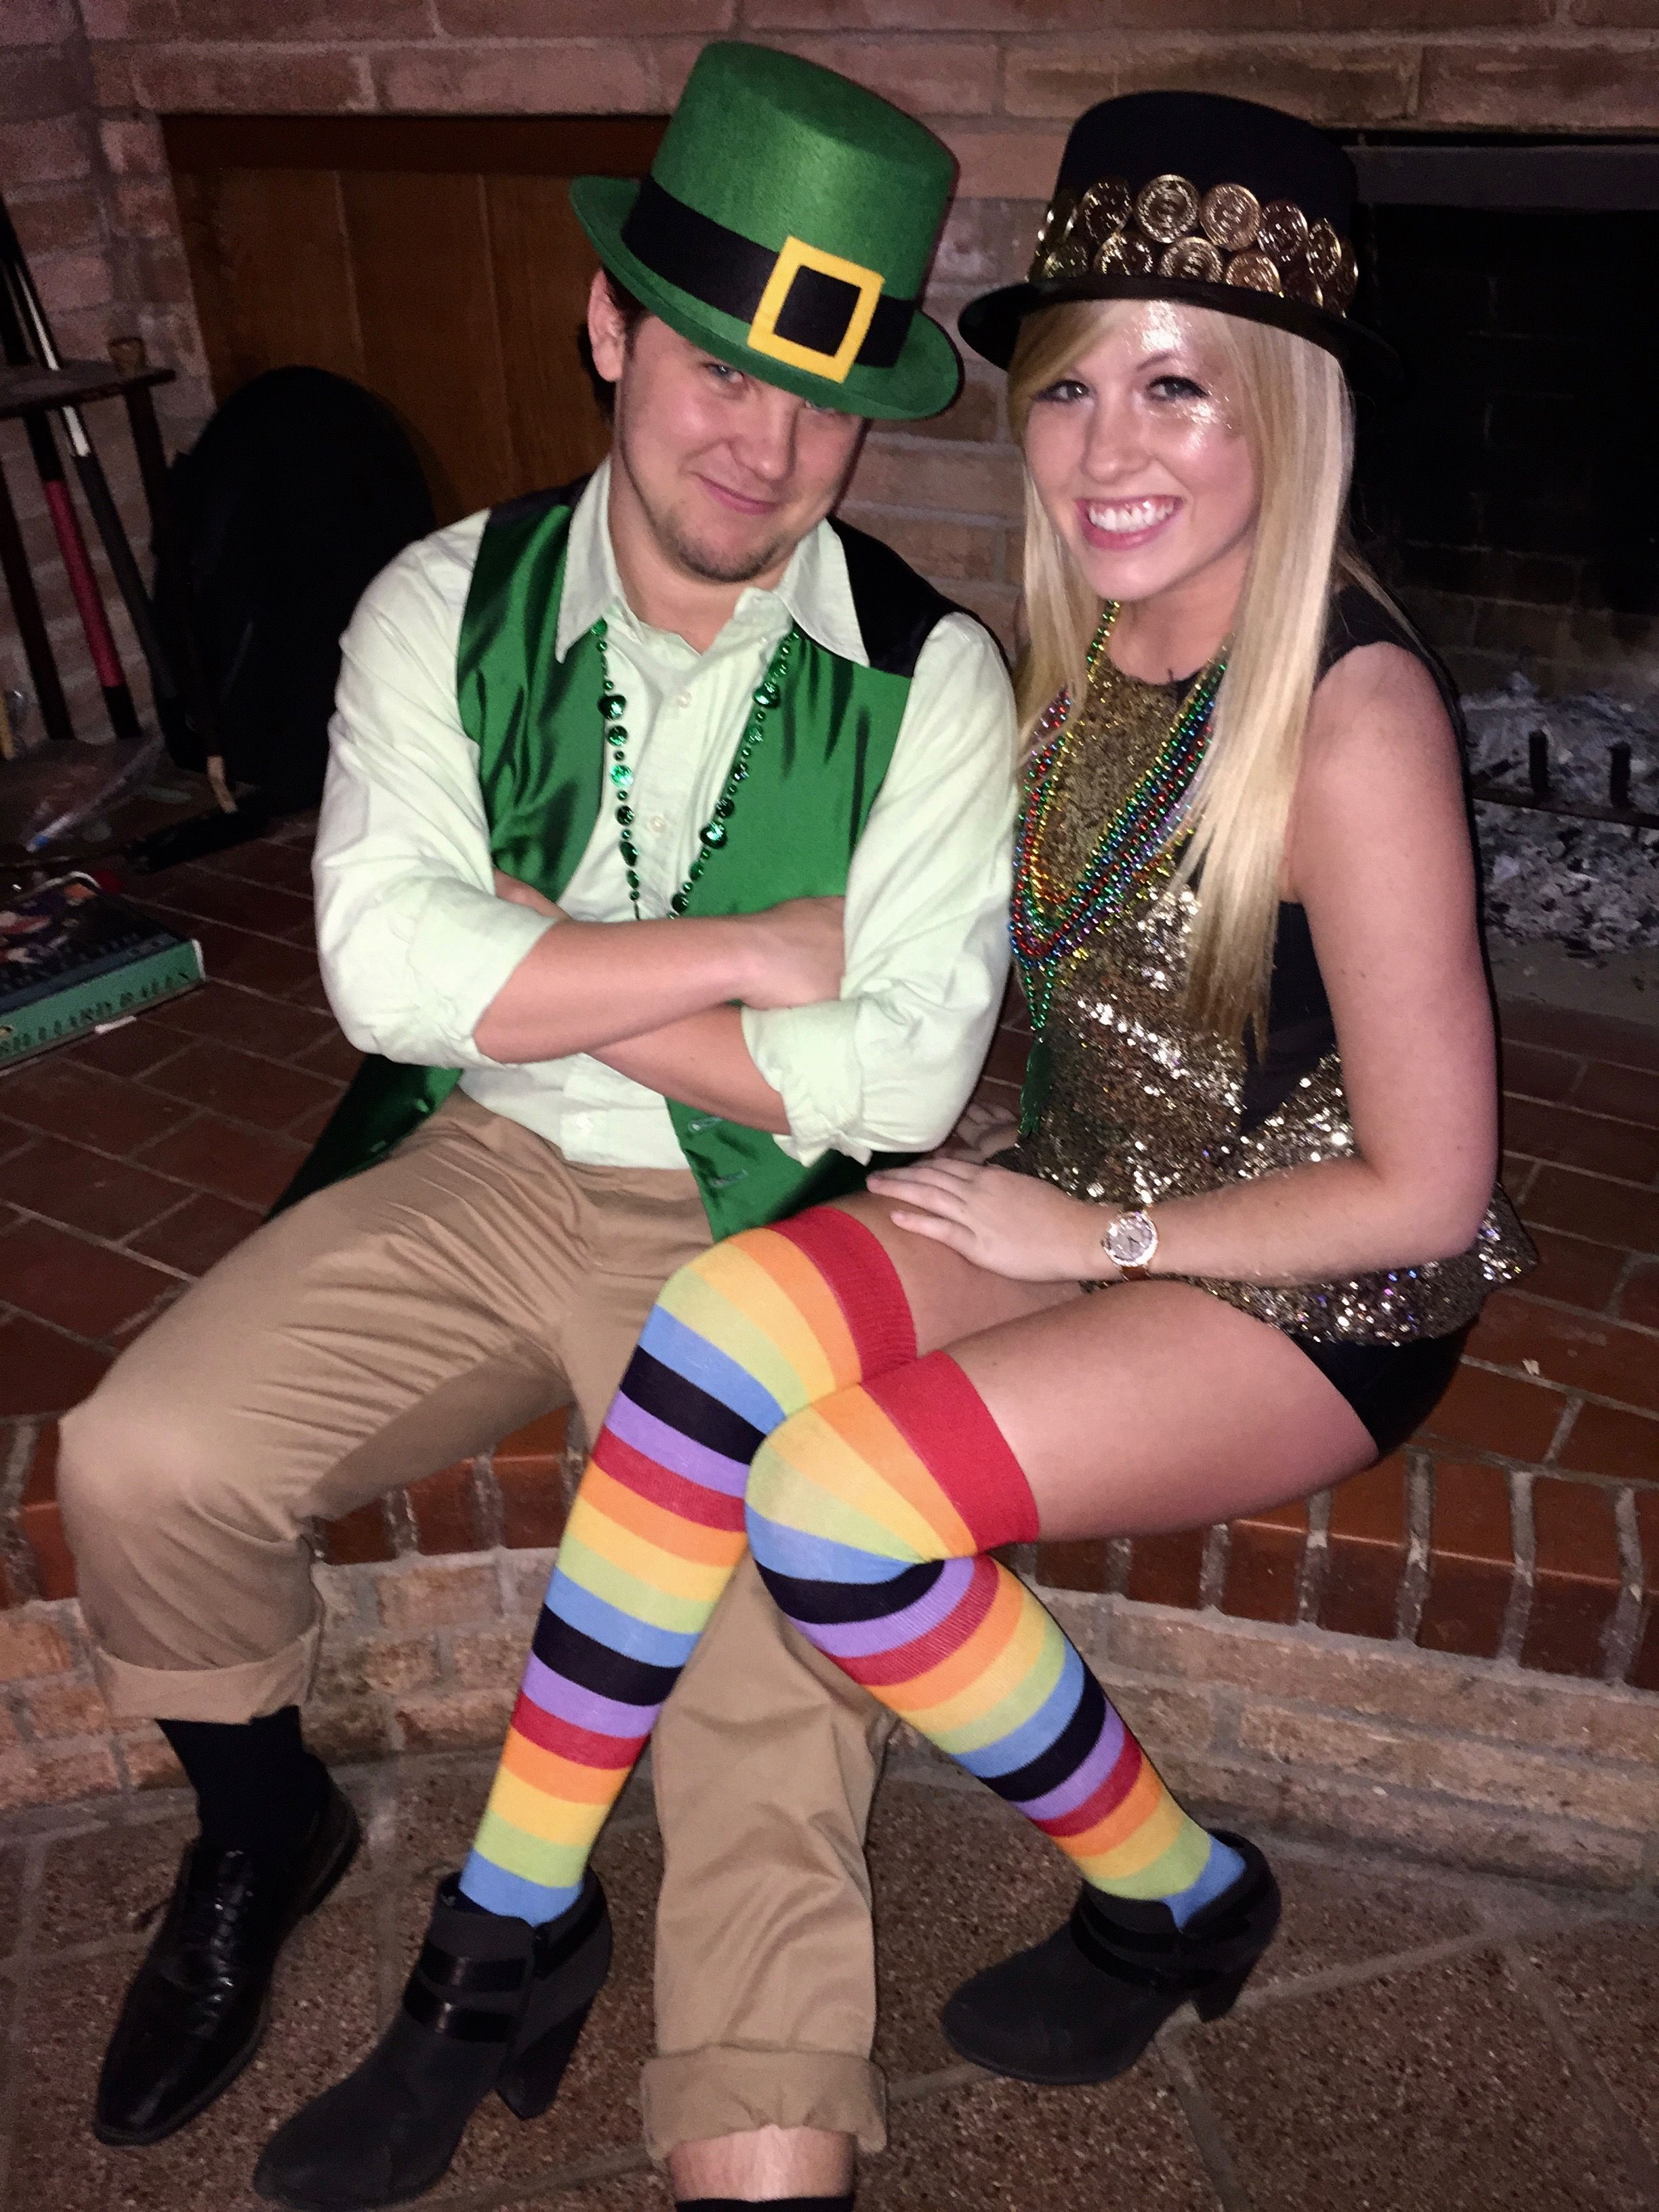 leprechaun found his pot of gold at the end of the rainbow easy diy halloween couples costume. Black Bedroom Furniture Sets. Home Design Ideas